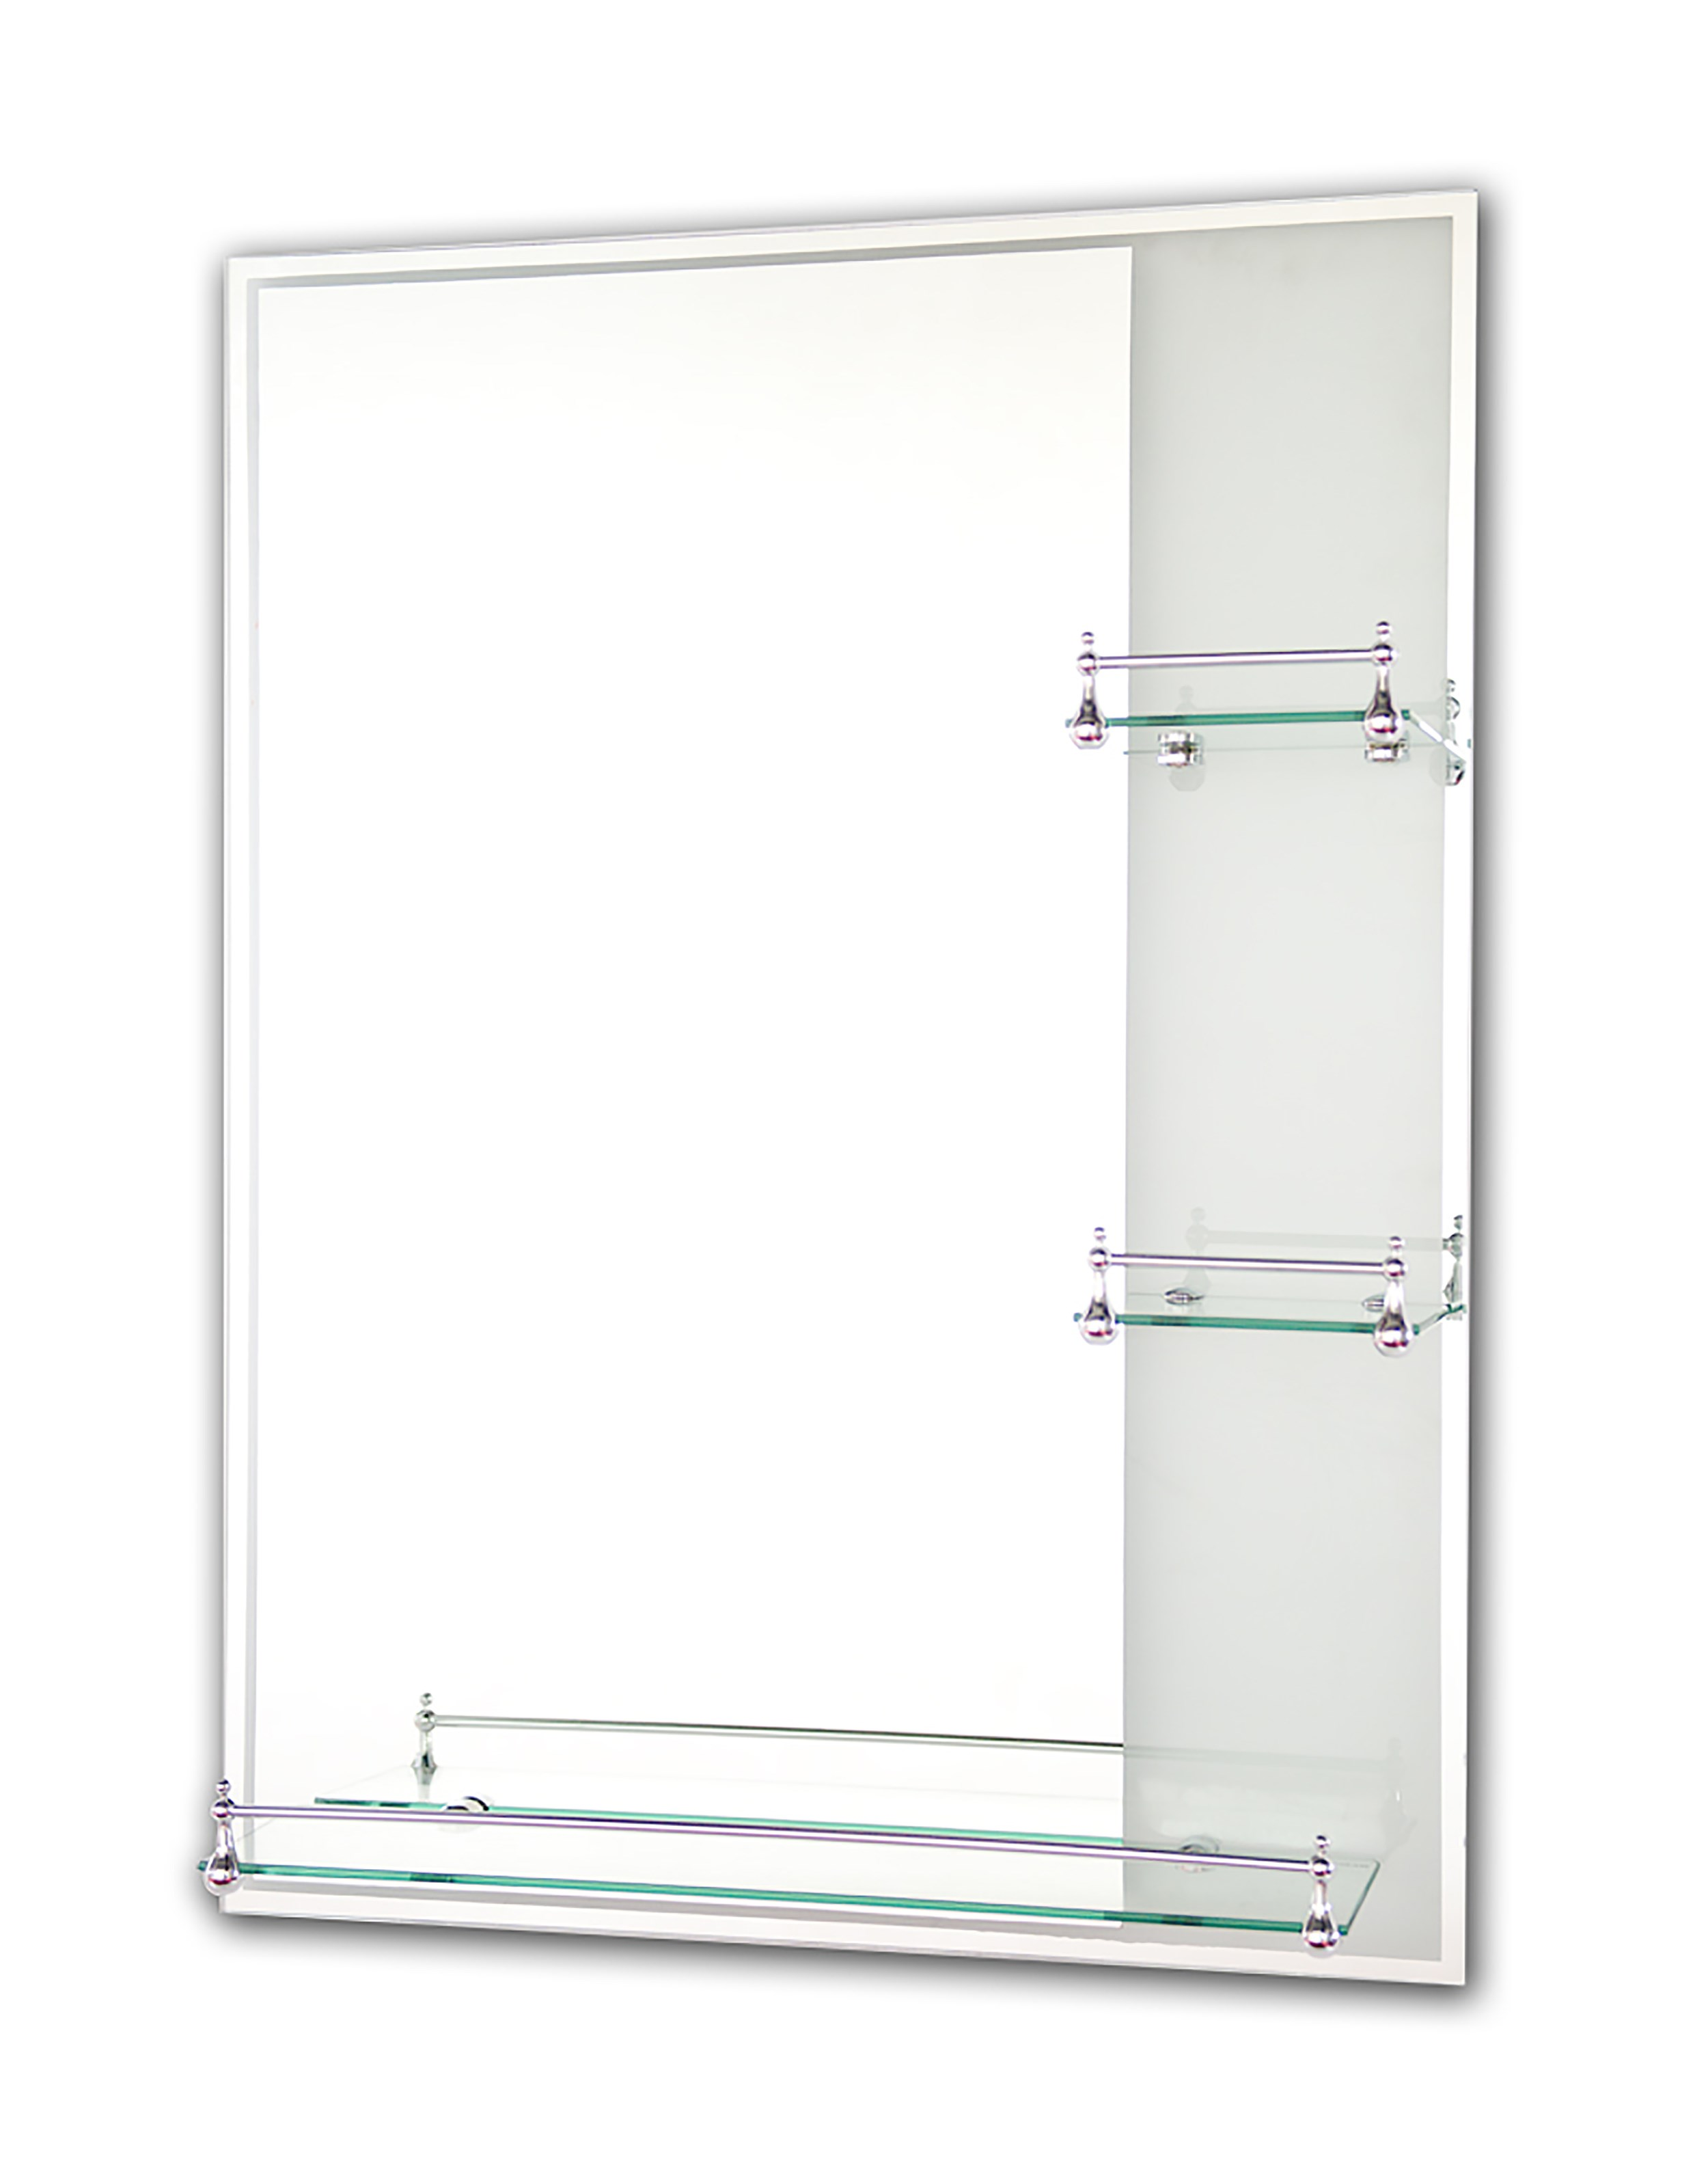 Tema Etched Rectangular Mirror with 3 Shelves - 80 x 60cm | Bathroom ...